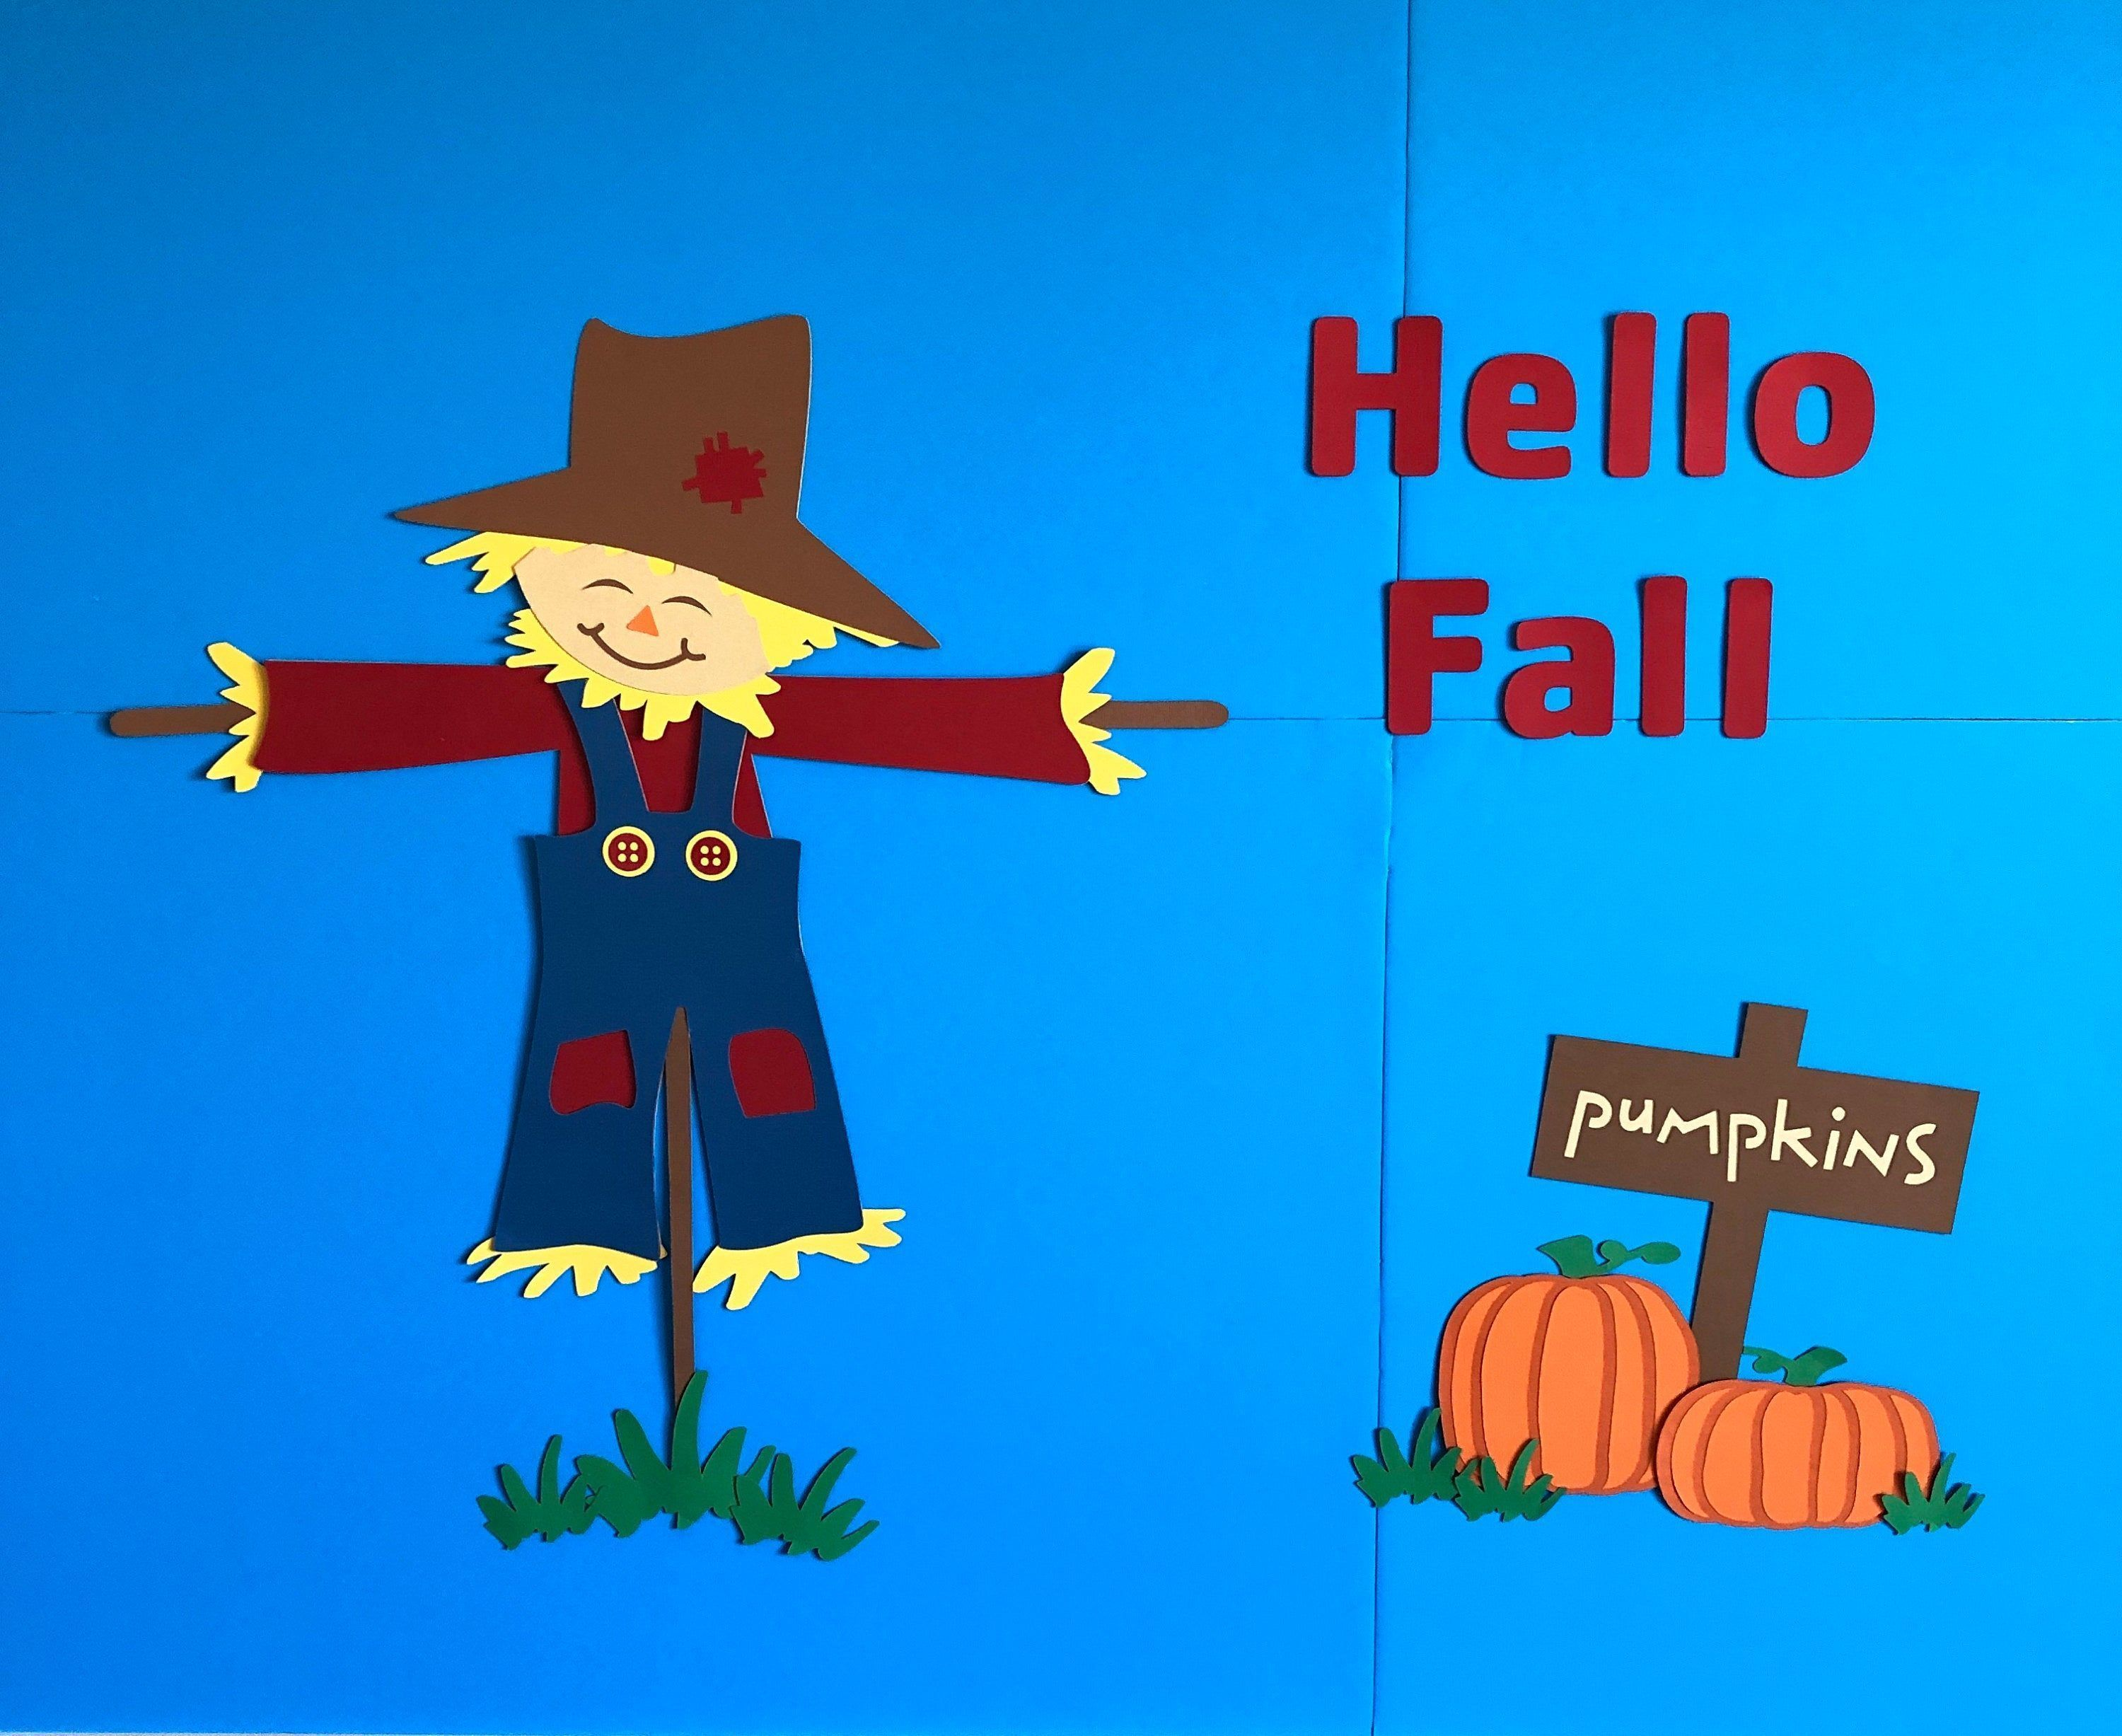 Fall Bulletin Board Set, Scarecrow Bulletin Board Set, Halloween Bulletin Board, Scarecrow Classroom Decorations, Scarecrow Door Decoration #pumpkinpatchbulletinboard Fall Bulletin Board Set, Scarecrow Bulletin Board Set, Halloween Bulletin Board, Scarecrow Classroom Decorations, Scarecrow Door Decoration #fallbulletinboards Fall Bulletin Board Set, Scarecrow Bulletin Board Set, Halloween Bulletin Board, Scarecrow Classroom Decorations, Scarecrow Door Decoration #pumpkinpatchbulletinboard Fall B #falldoordecorationsclassroom